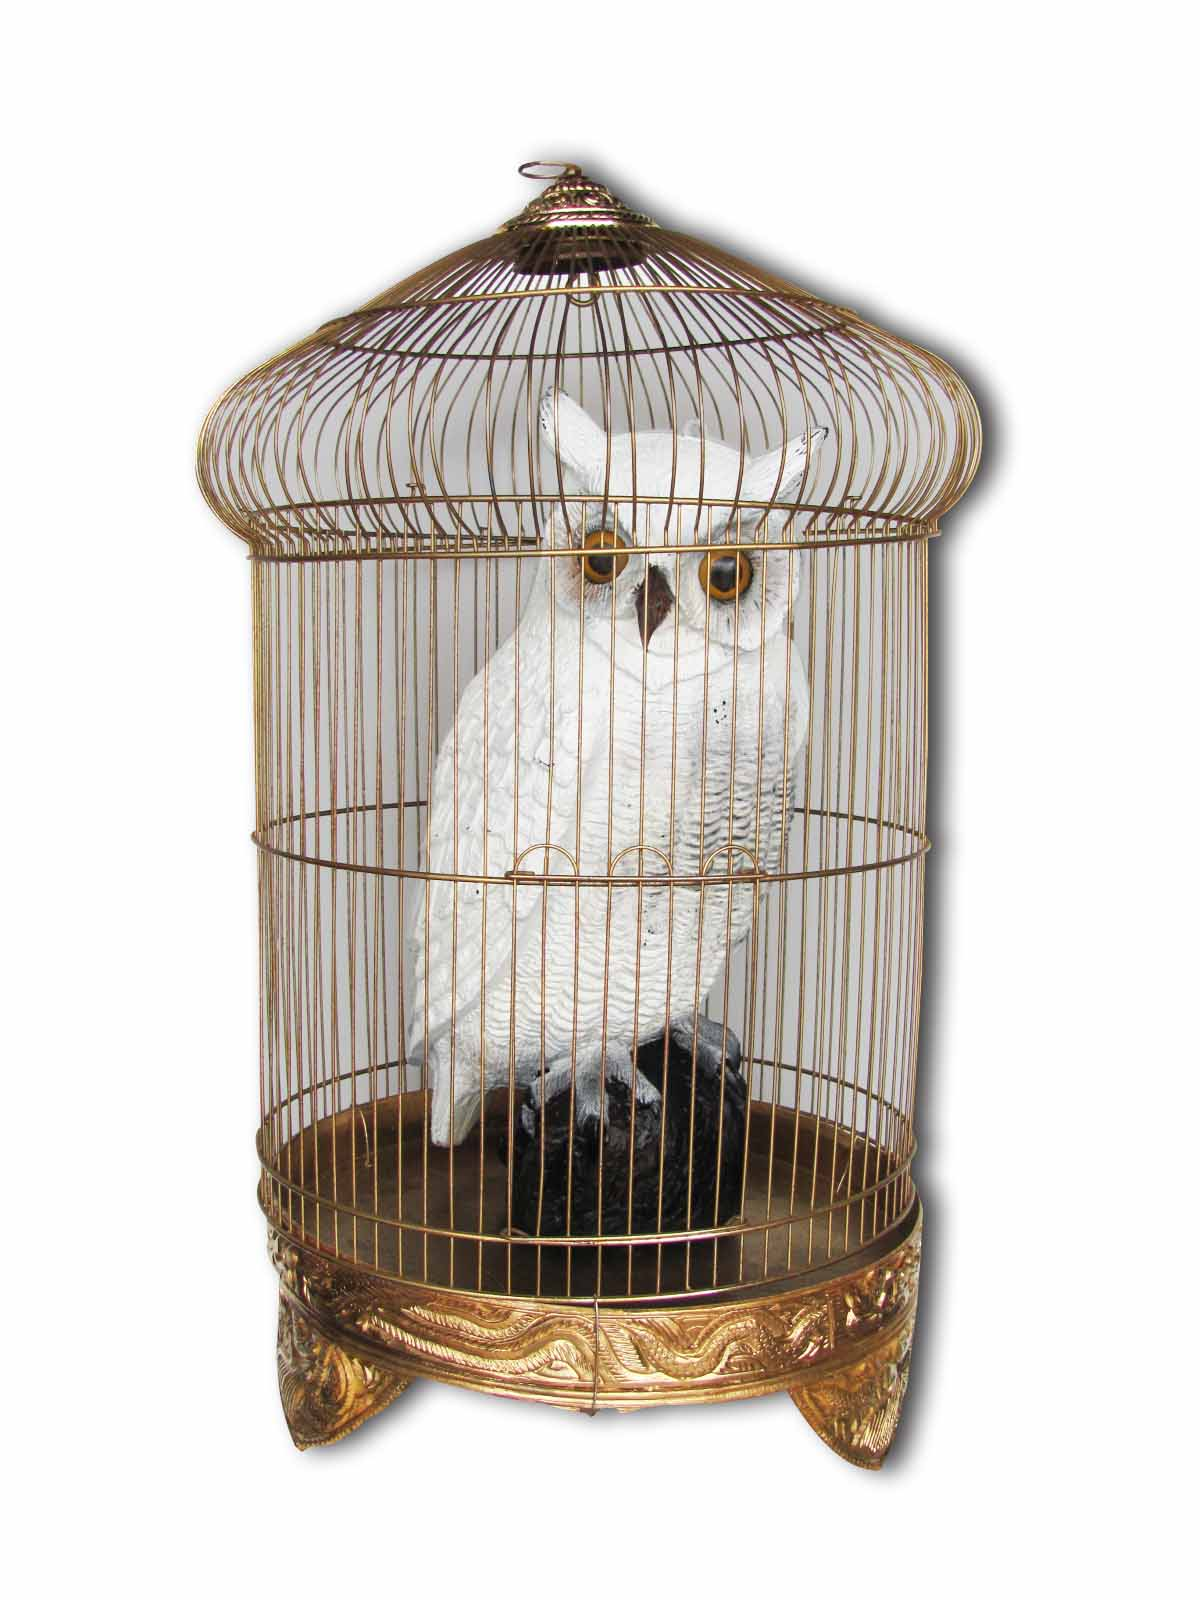 Owls - Hedwig (0.4m) Cage Included